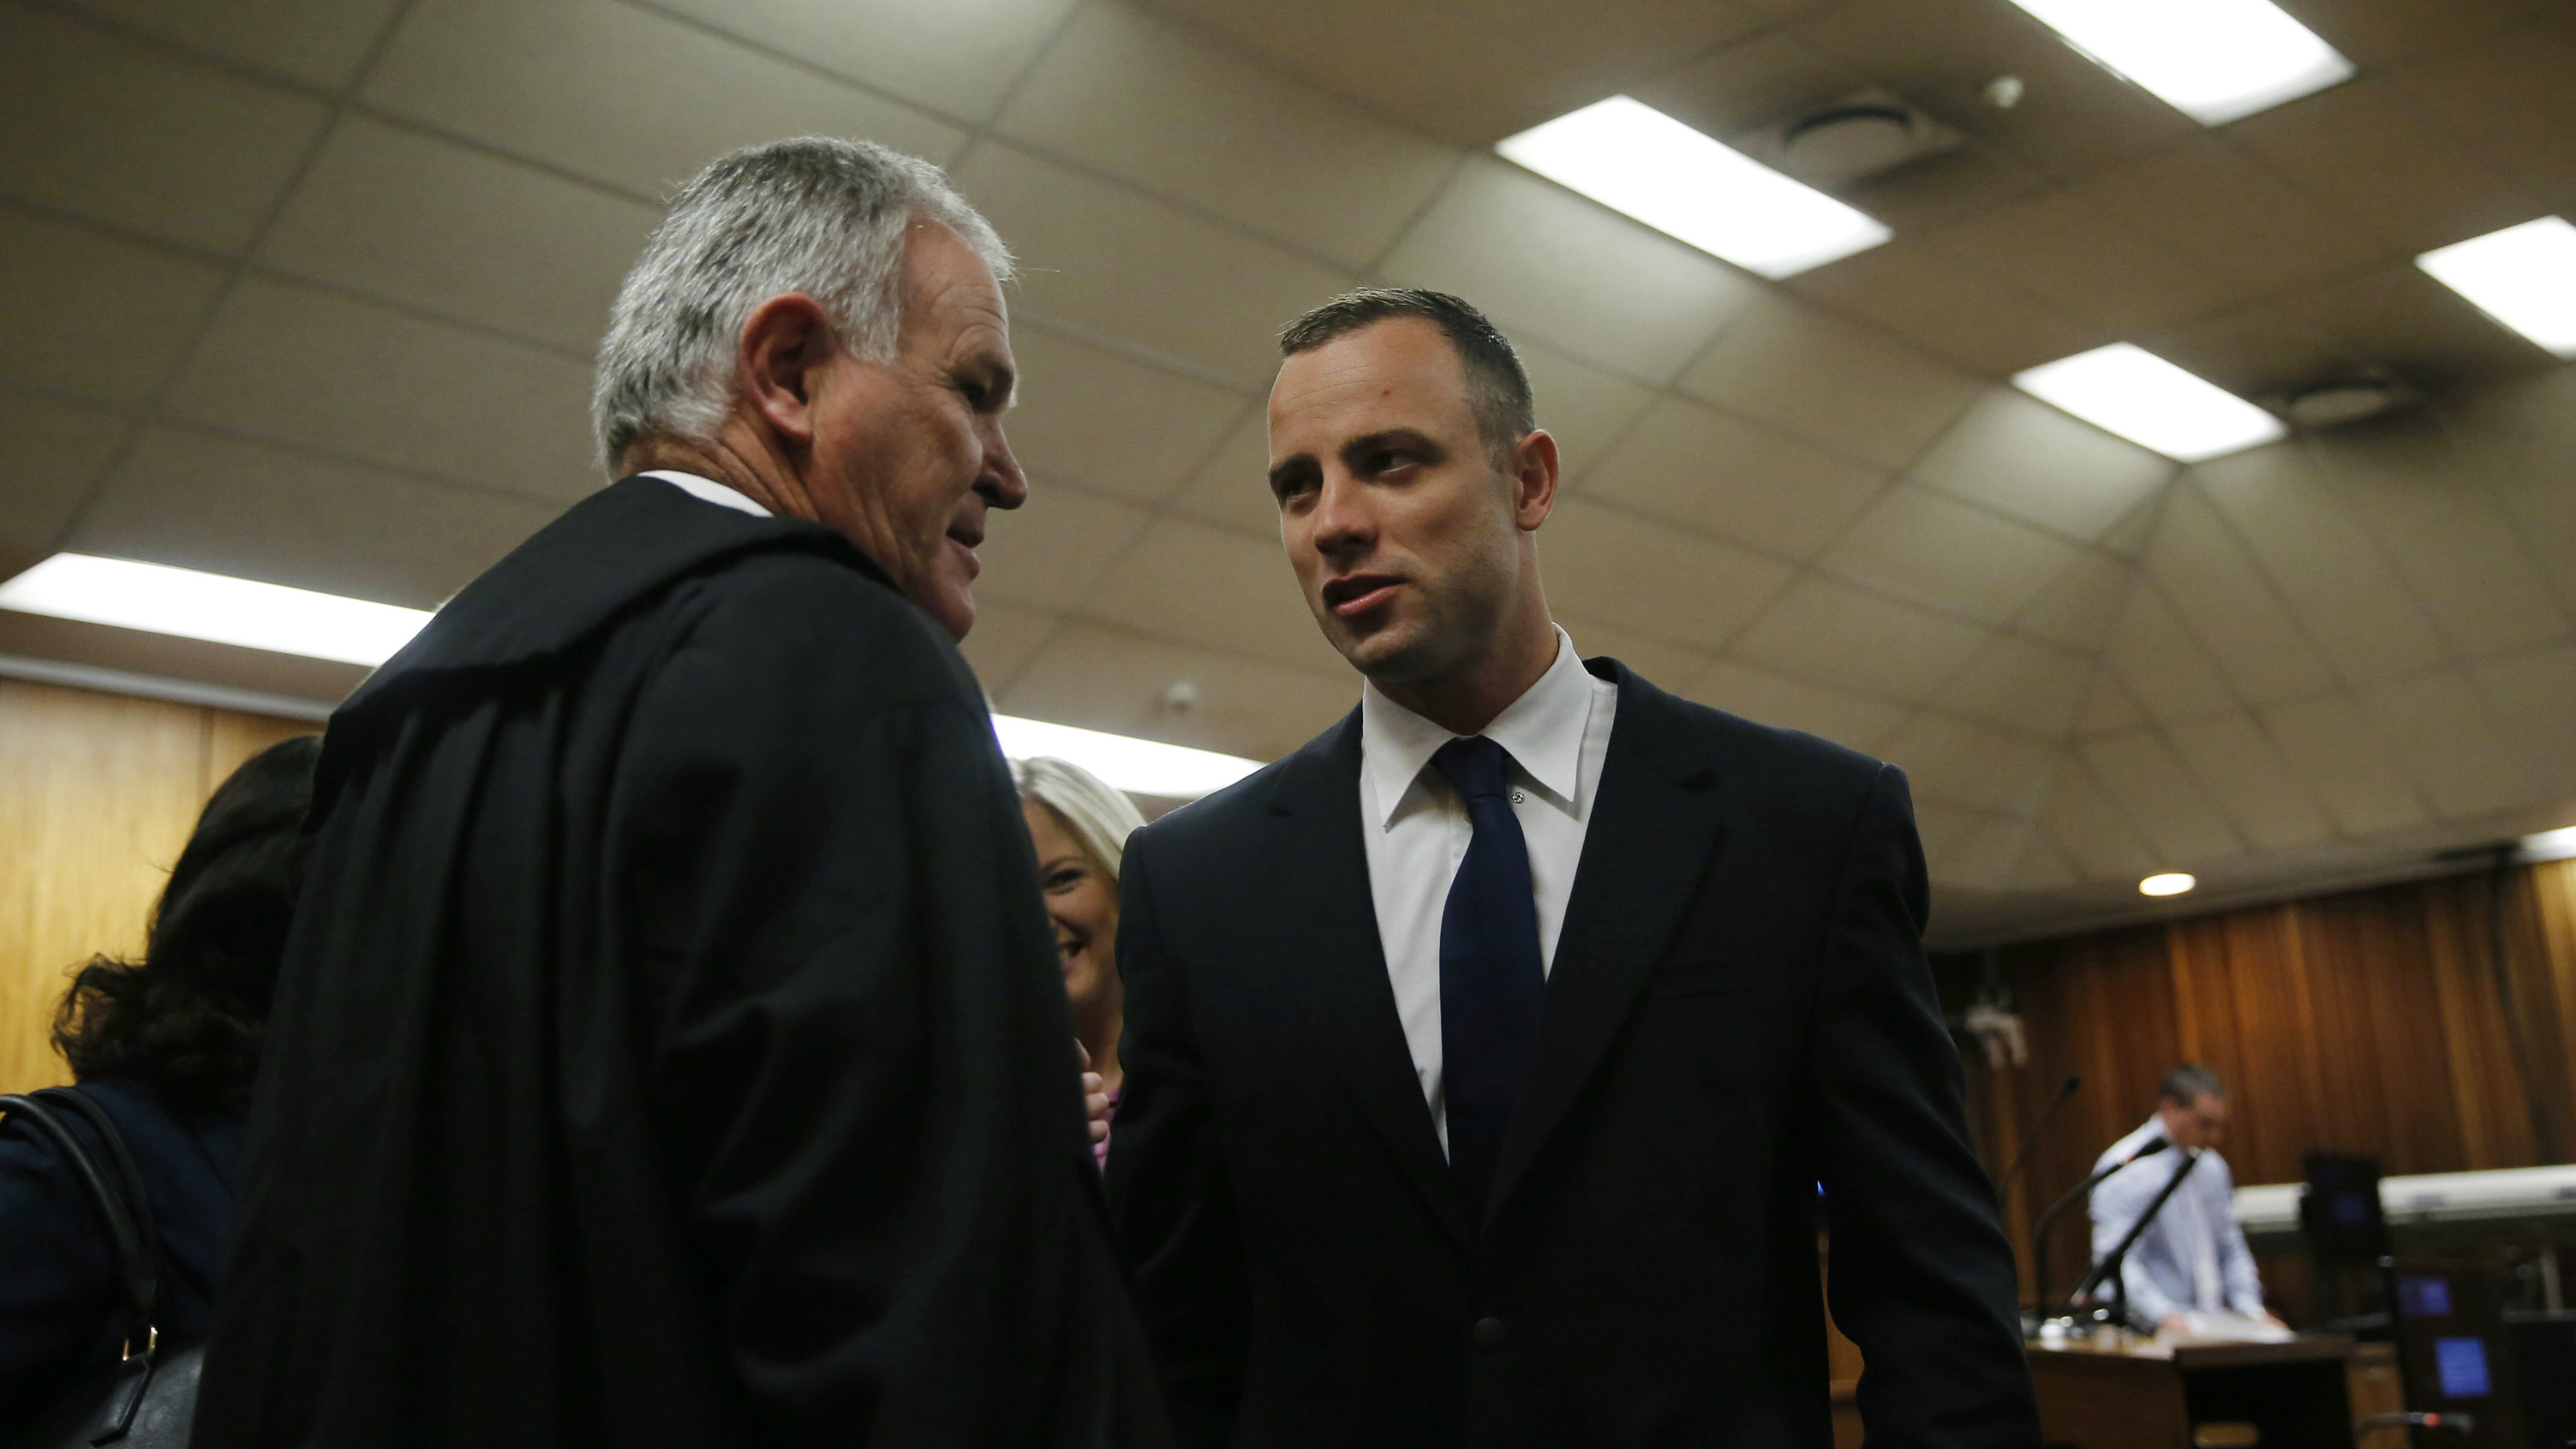 Oscar Pistorius, right, talks with his defense attorney Barry Roux, left, in a courtroom at the high court in Pretoria, South Africa, Tuesday, May 6, 2014. A man who lives next to the house where Pistorius fatally shot his girlfriend has testified at the athlete's murder trial about the night of the killing, saying he heard a man crying loudly and that he called the security of the housing estate for help. (AP Photo/Mike Hutchings, Pool)